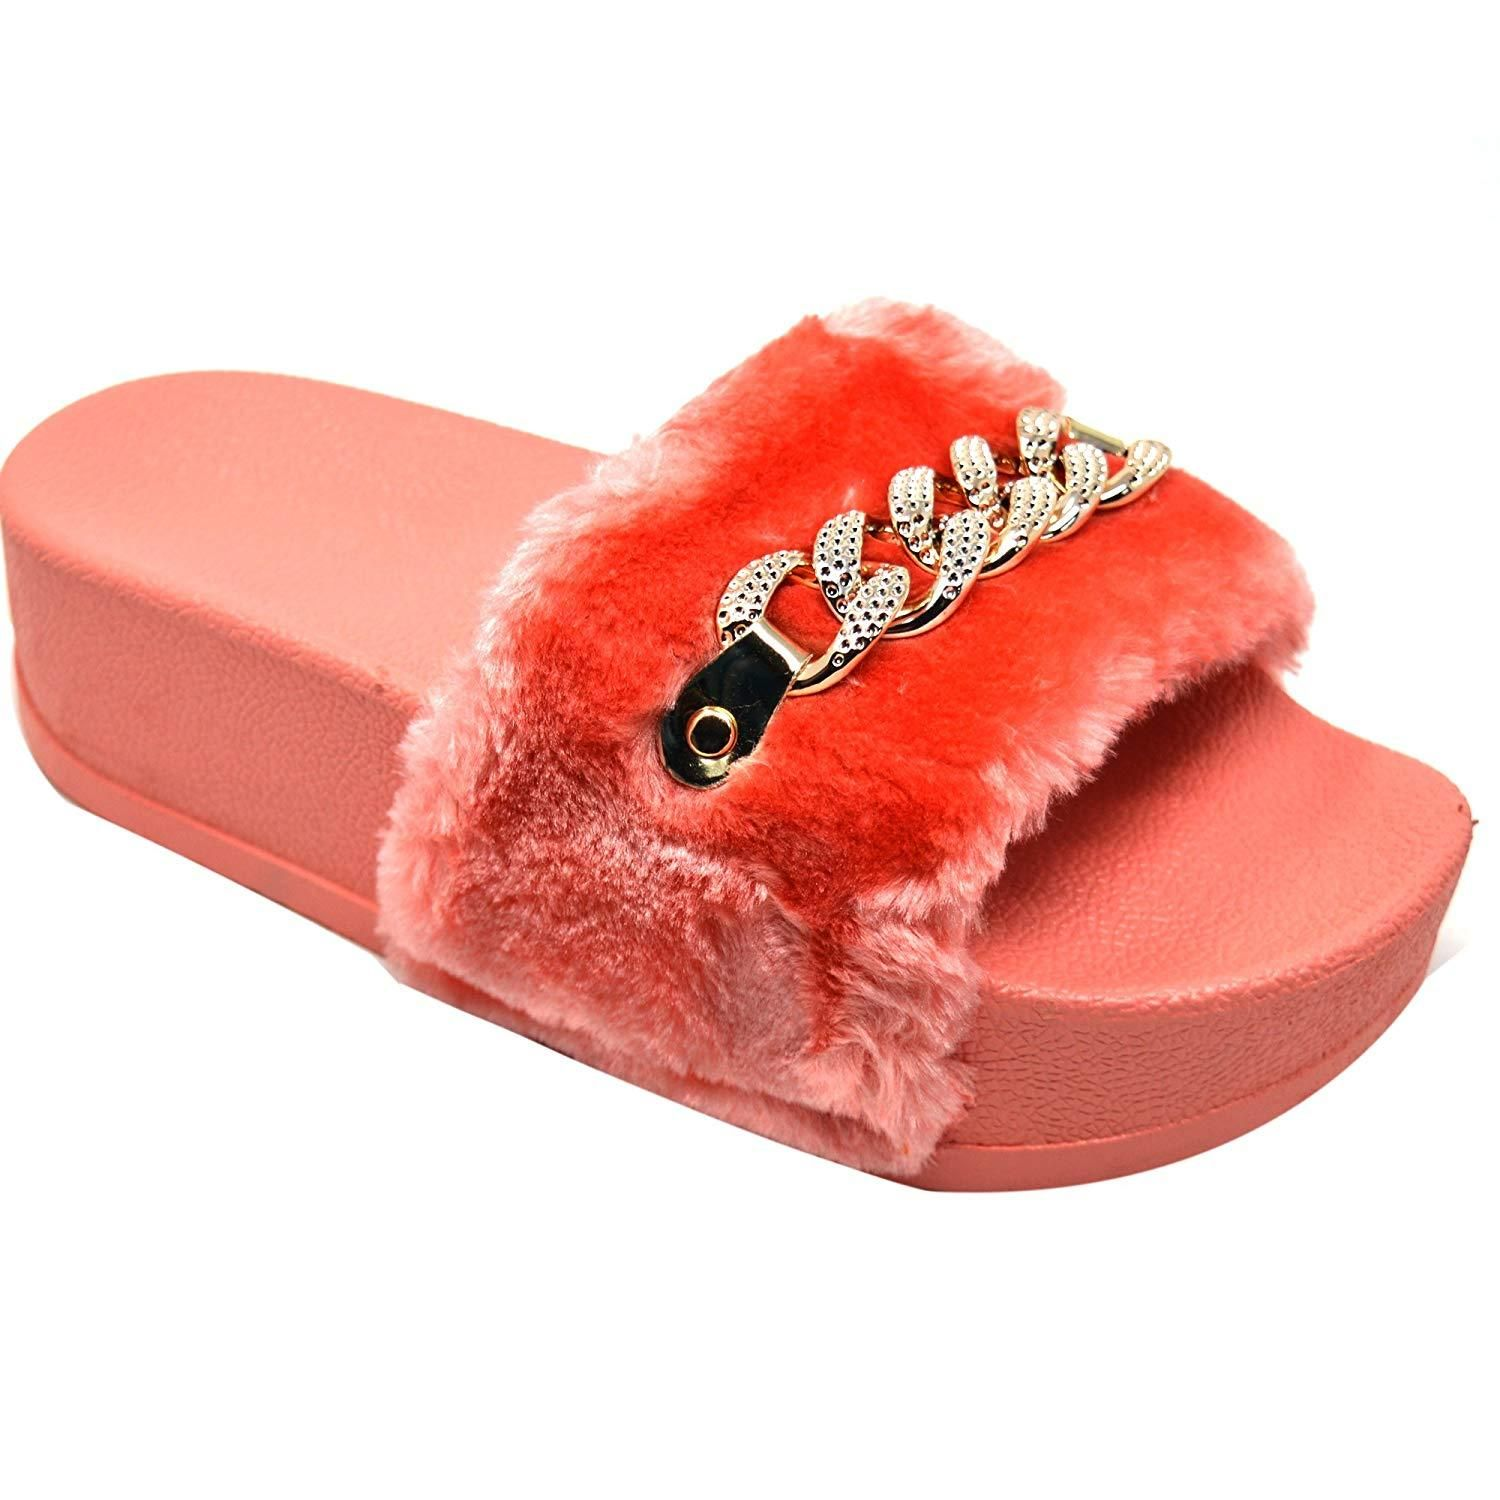 a61dfb70a4f929 Xelay Women s Coral Faux Fur Fashion Sliders Open Toe Slip On Indoor    Outdoor Sandals Mules